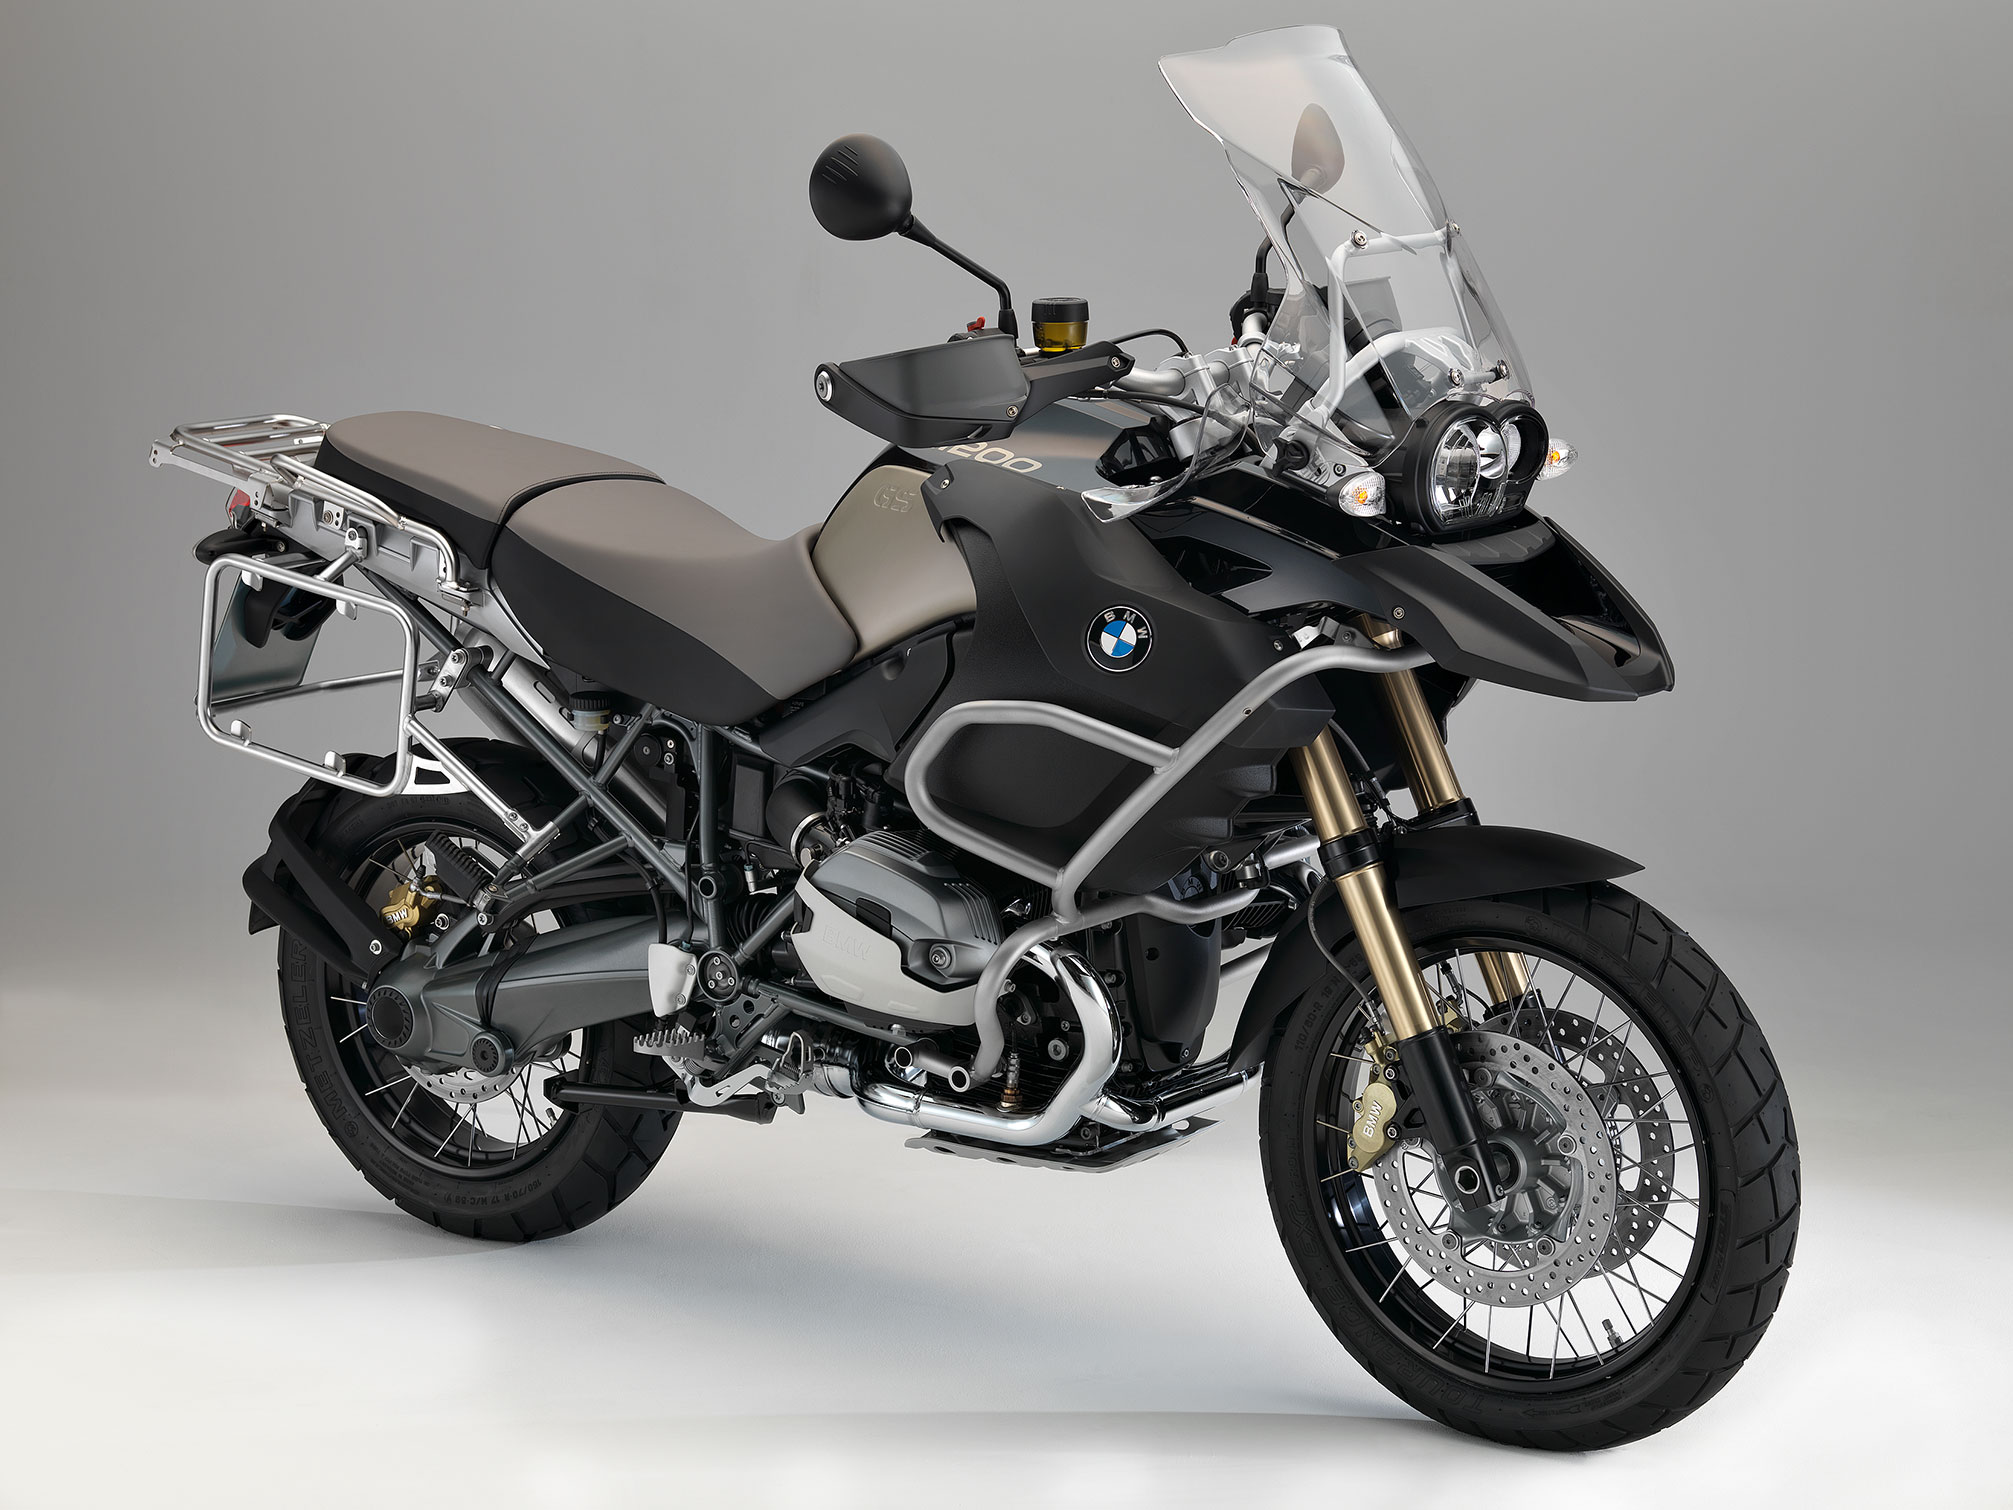 BMW R1200GS Adventure 2010 images #78325